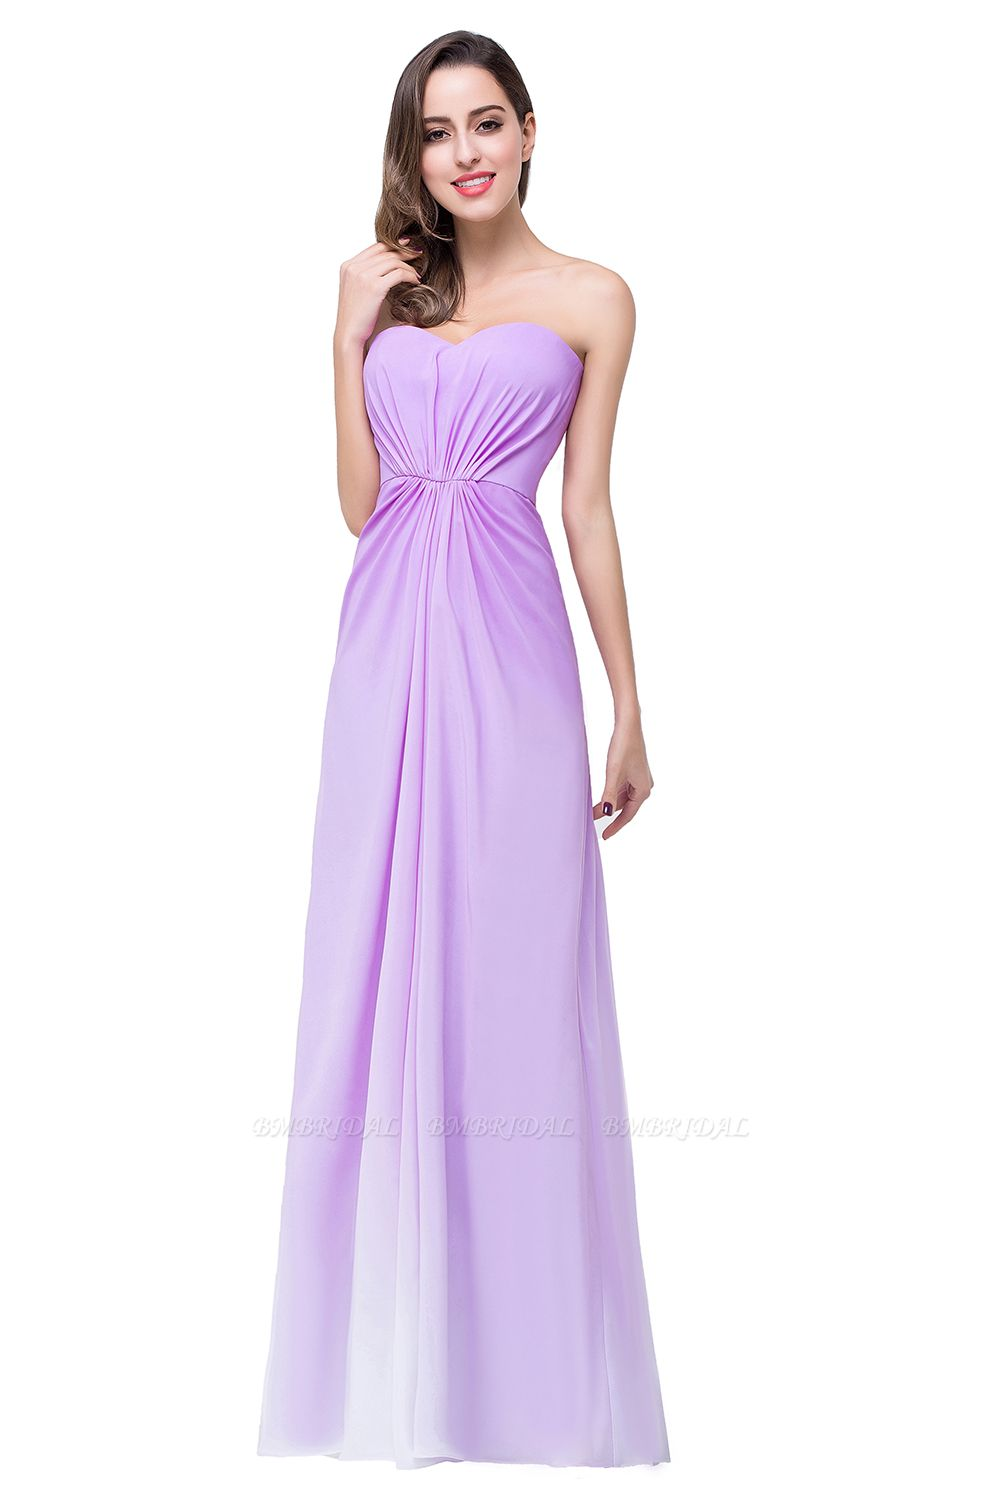 Gorgeous A-line Strapless Lilac Chiffon Bridesmaid Dress Cheap In Stock